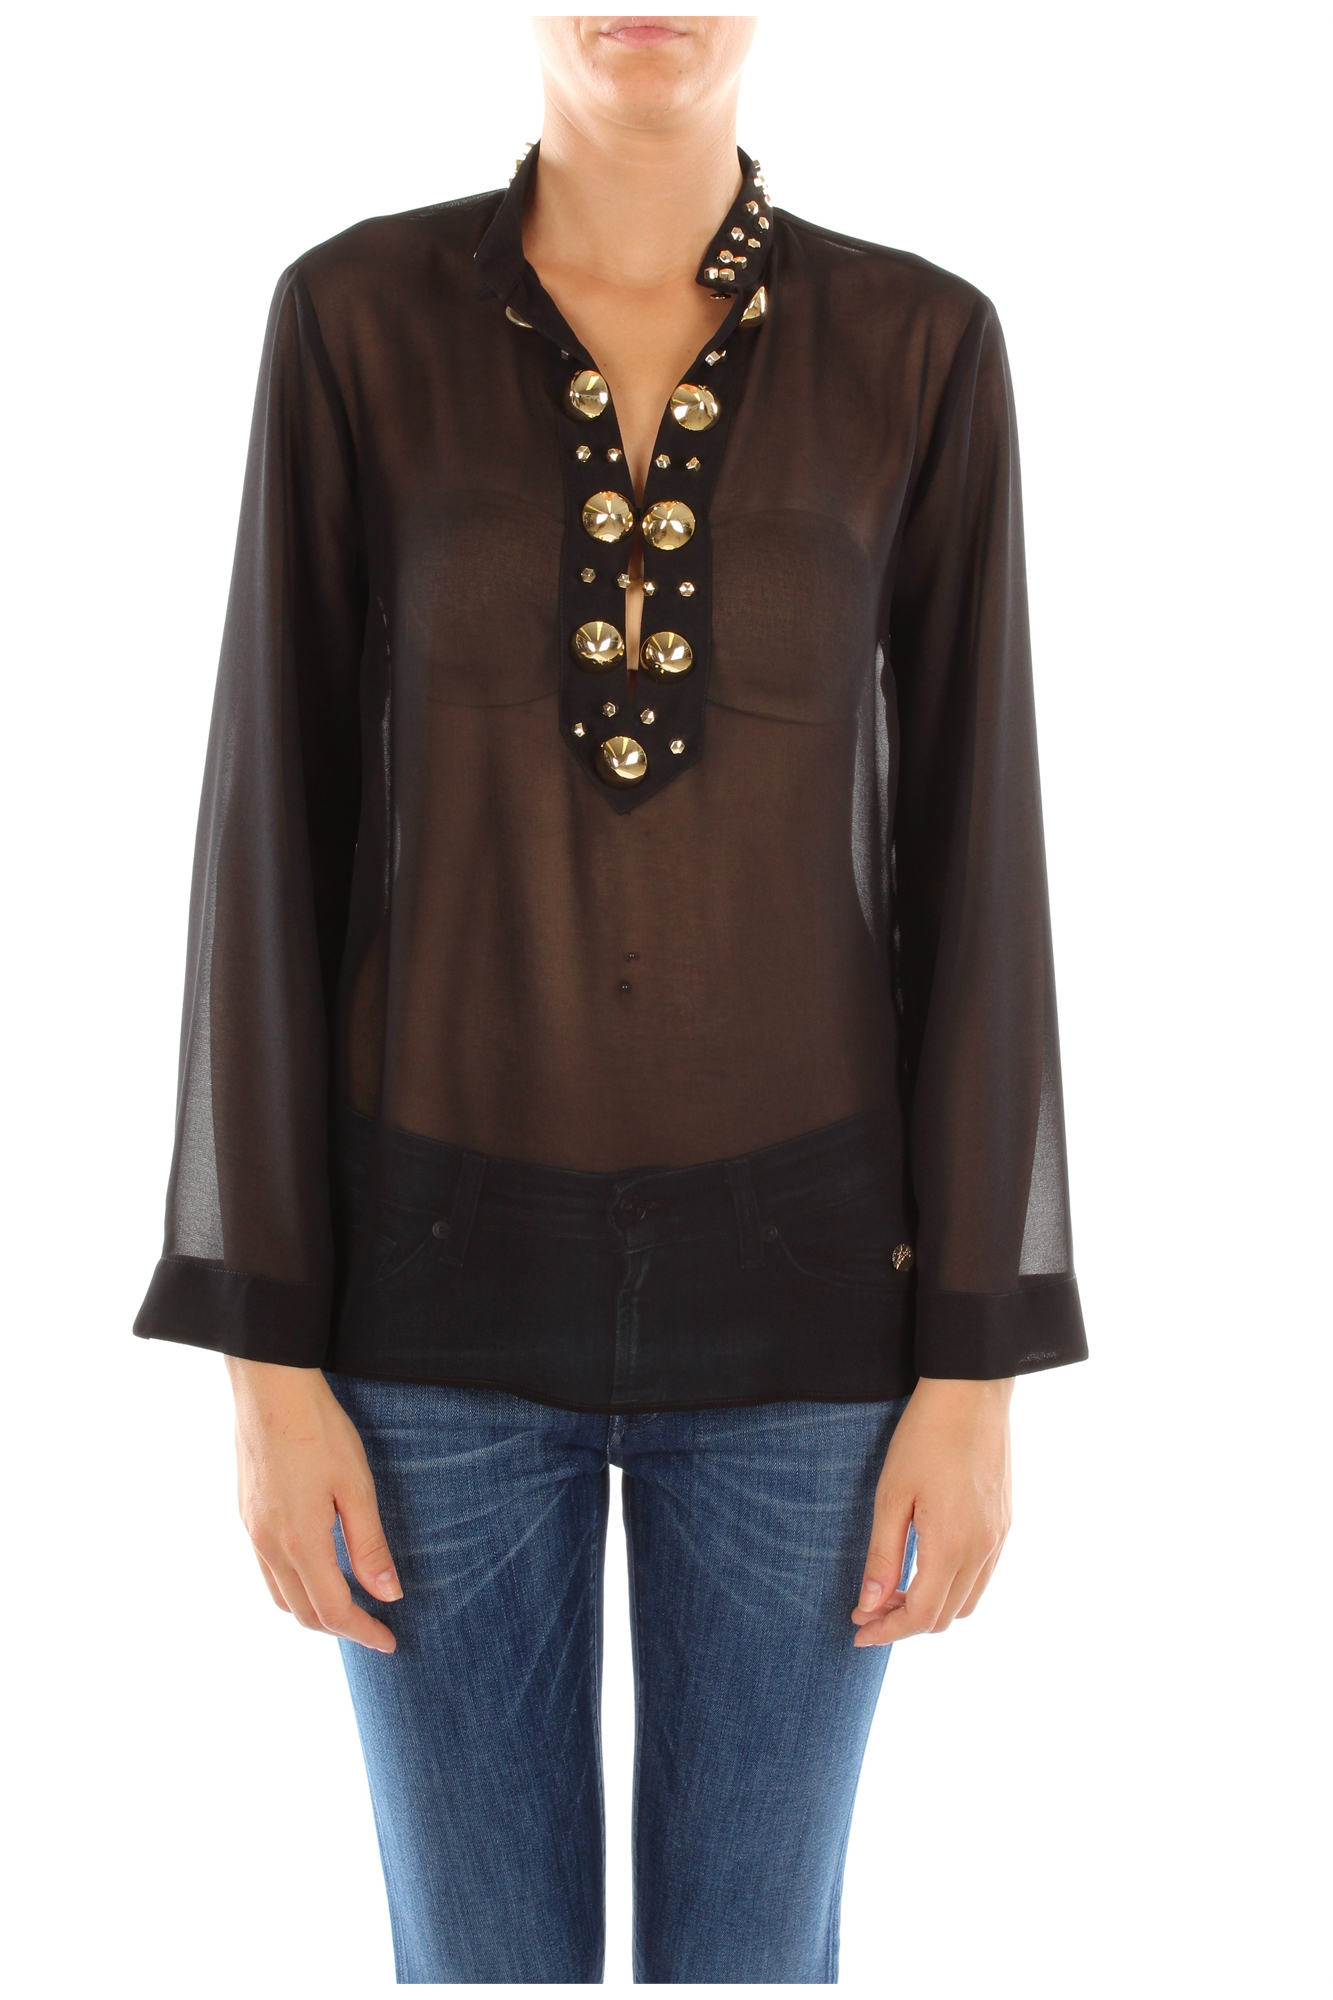 Shirts versace collection women polyester black for Versace t shirts women